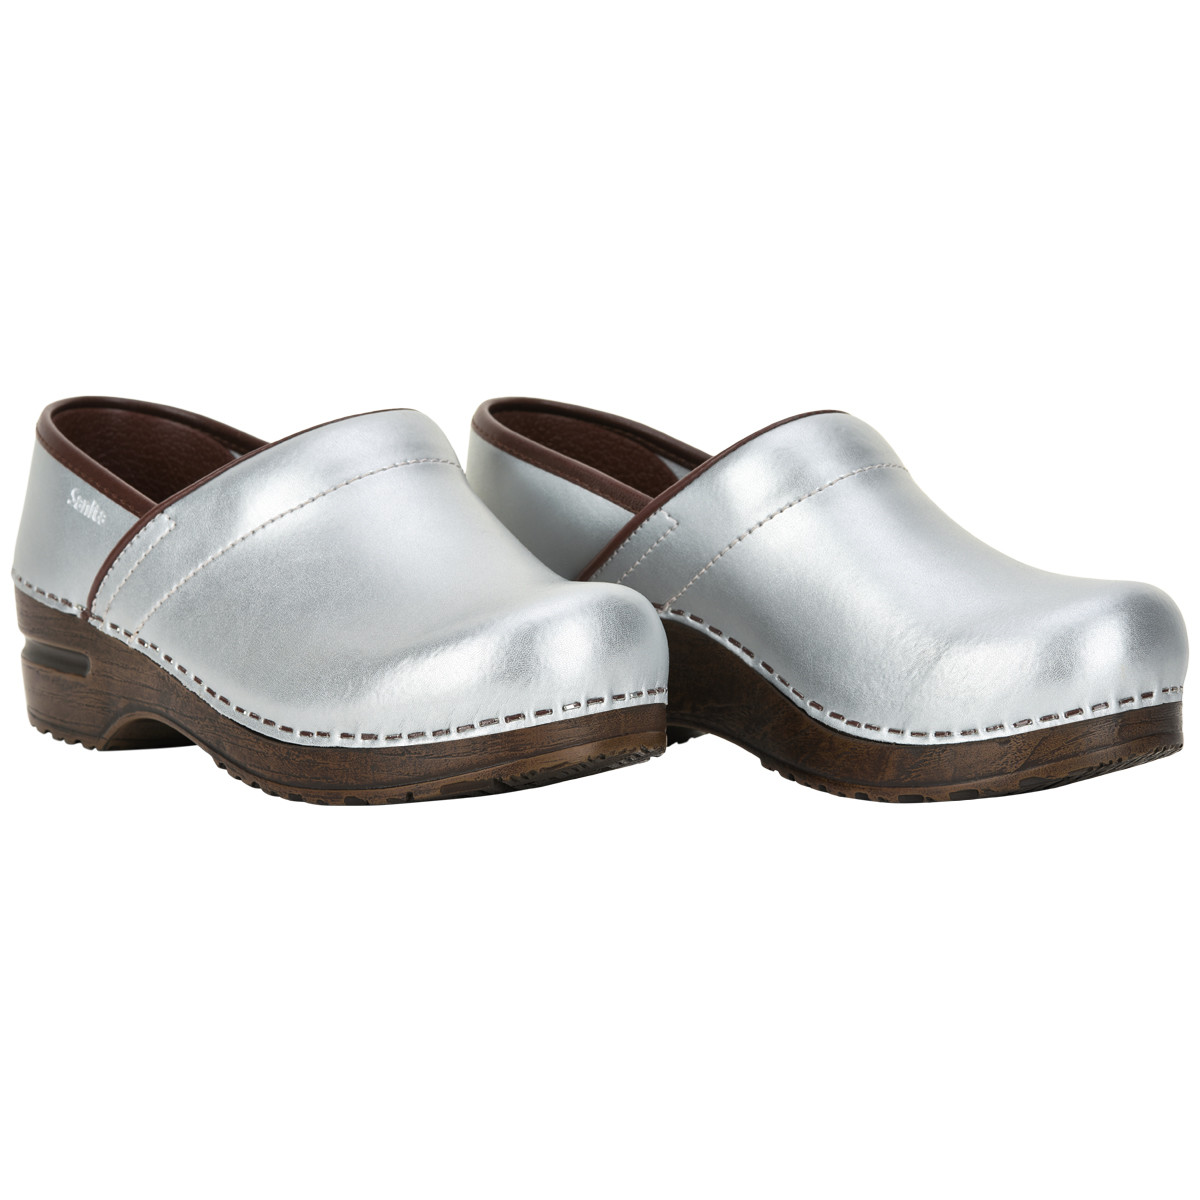 Sanita Original Izabella Clogs 457006w 16